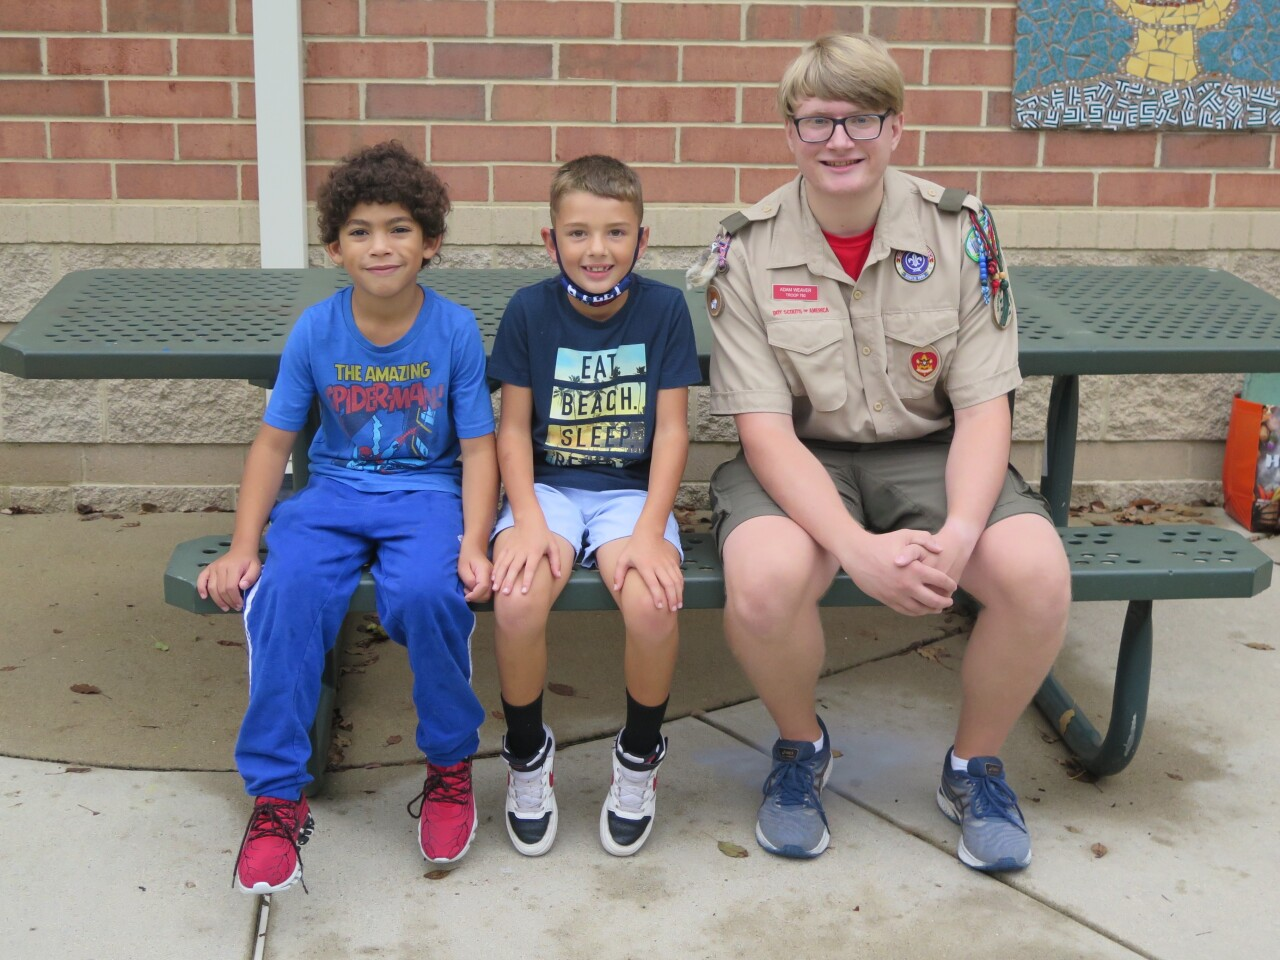 From left, Kamdyn Crump, Dallas Meeker and Adam Weaver pose for a photo.